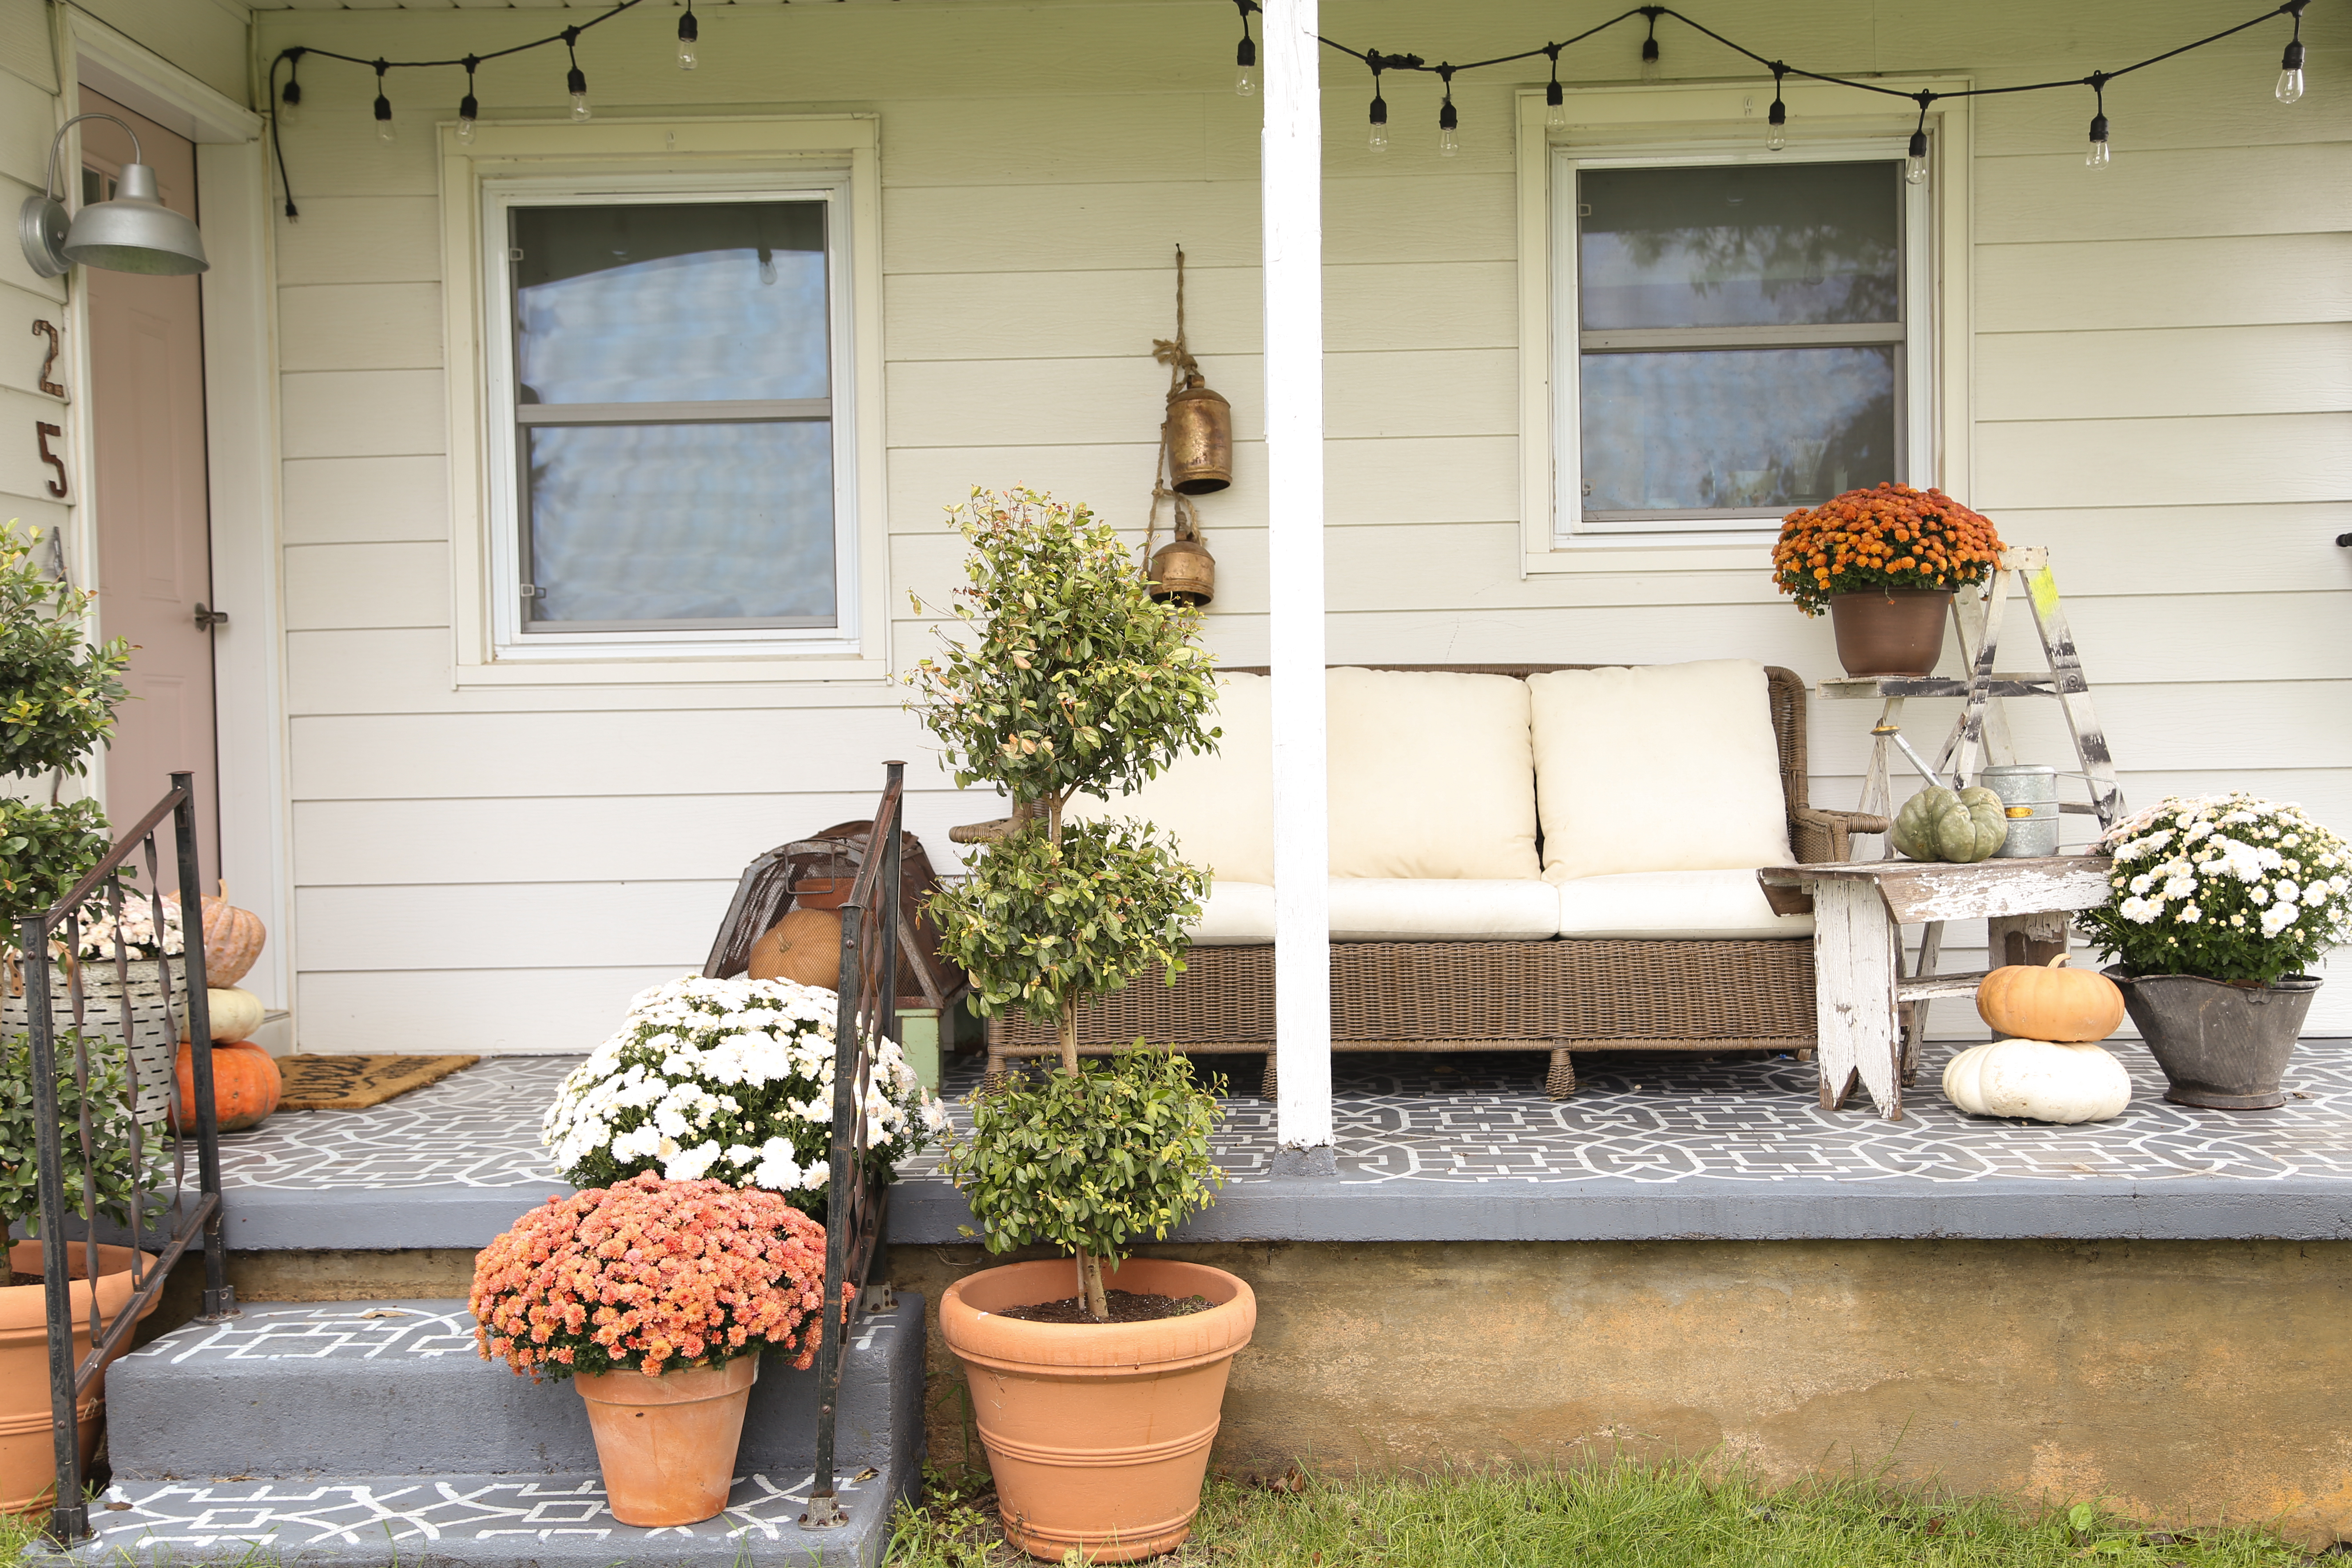 Farmhouse front porch ready for fall with oranges and whites